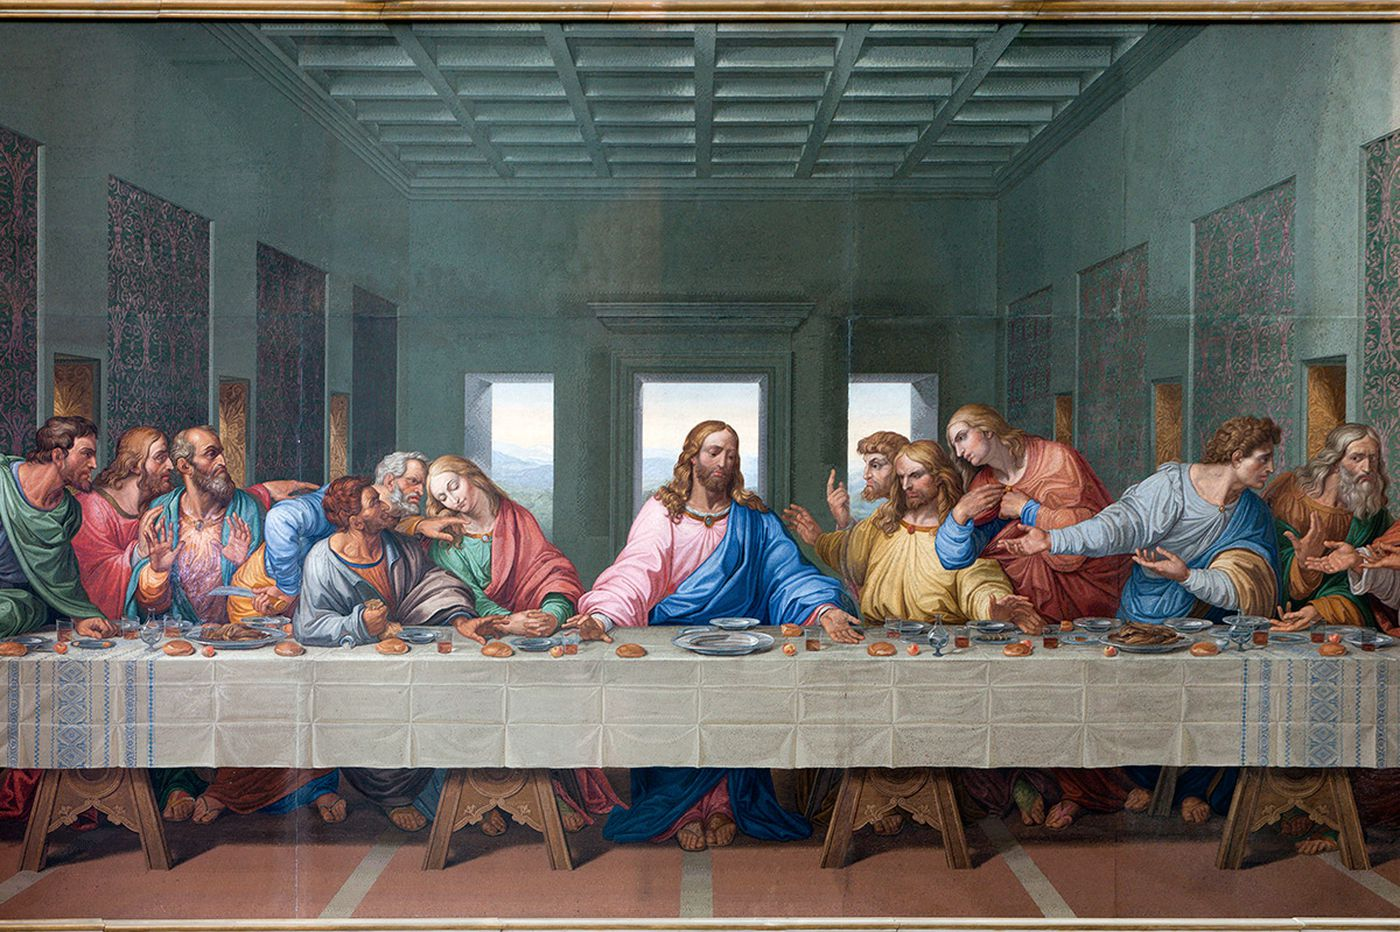 What wine did Jesus drink at the Last Supper?